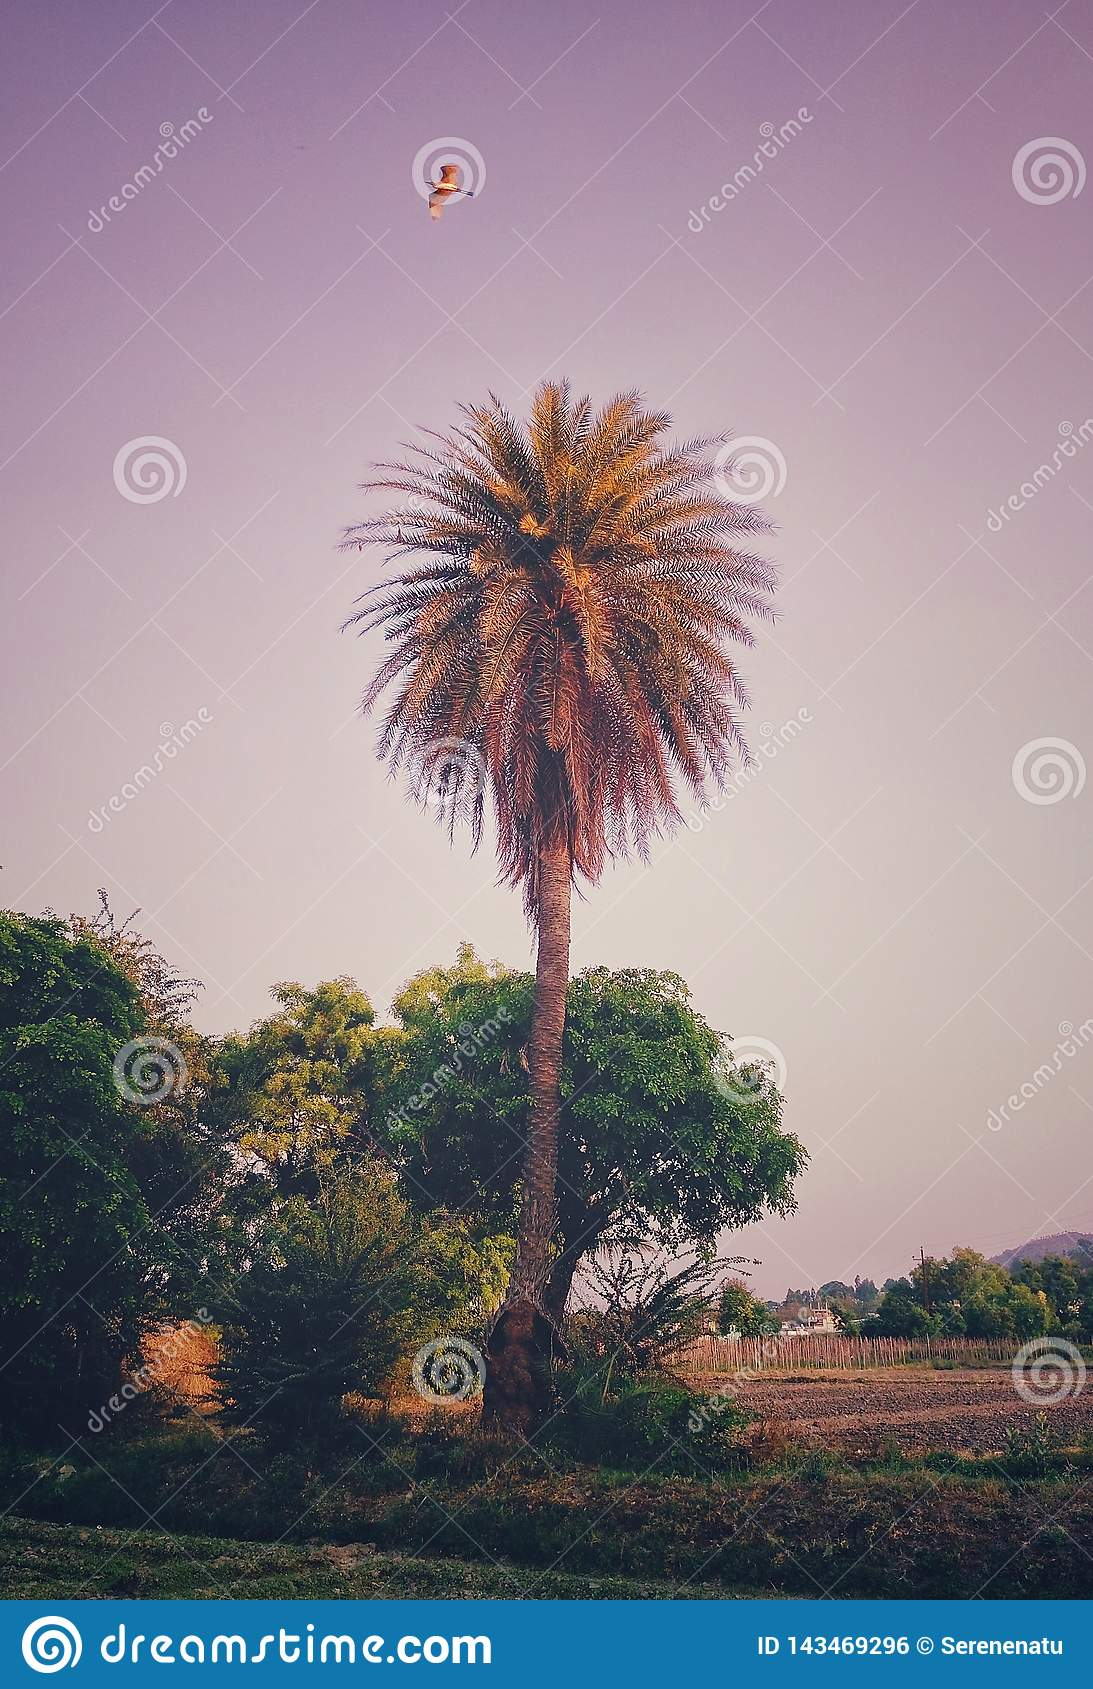 An aesthetic image of a palm tree with an eagle flying on top of it..